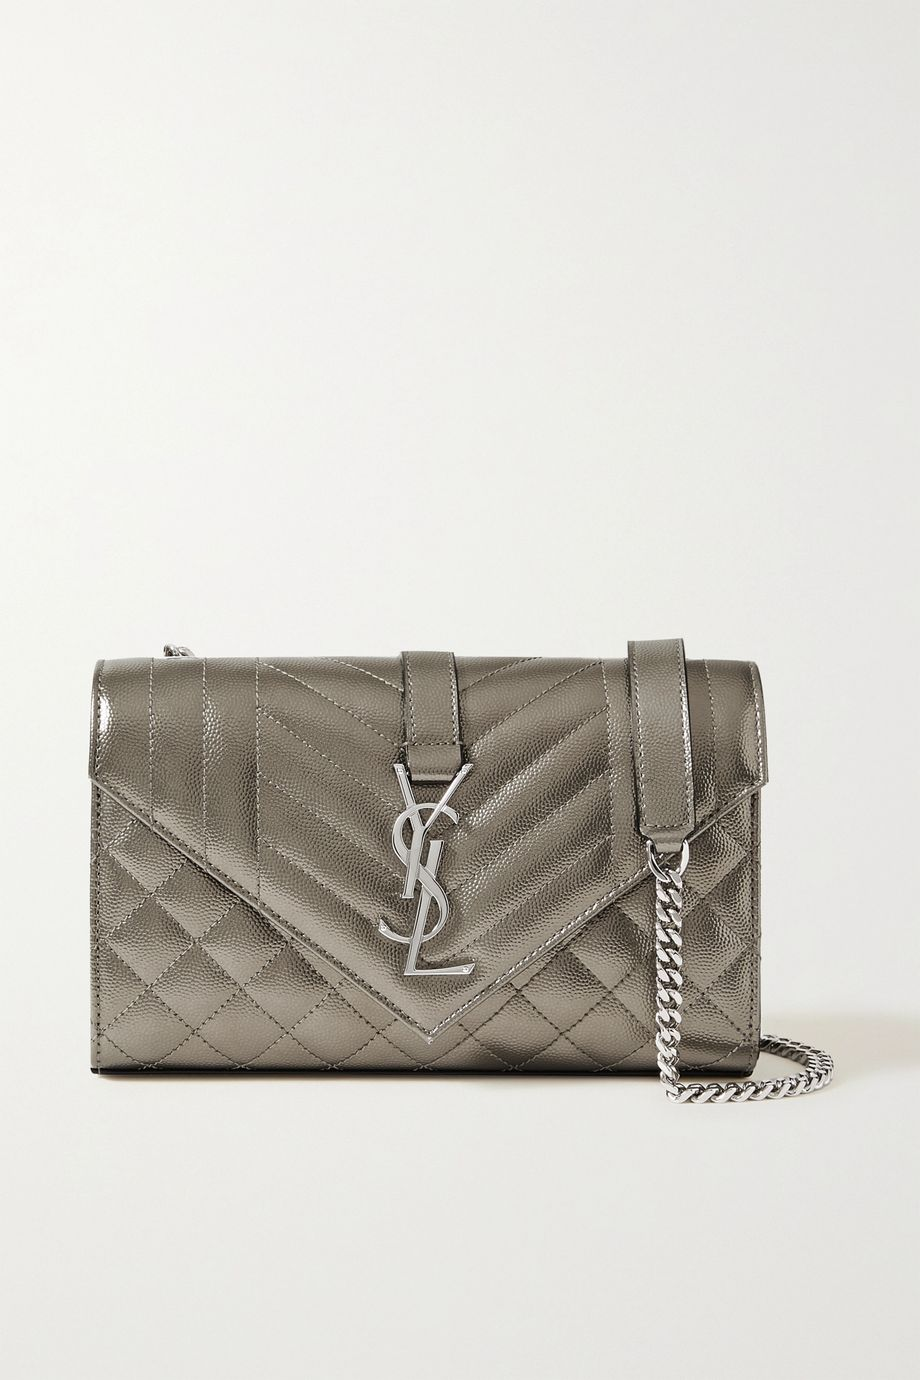 SAINT LAURENT Envelope small quilted metallic textured-leather shoulder bag